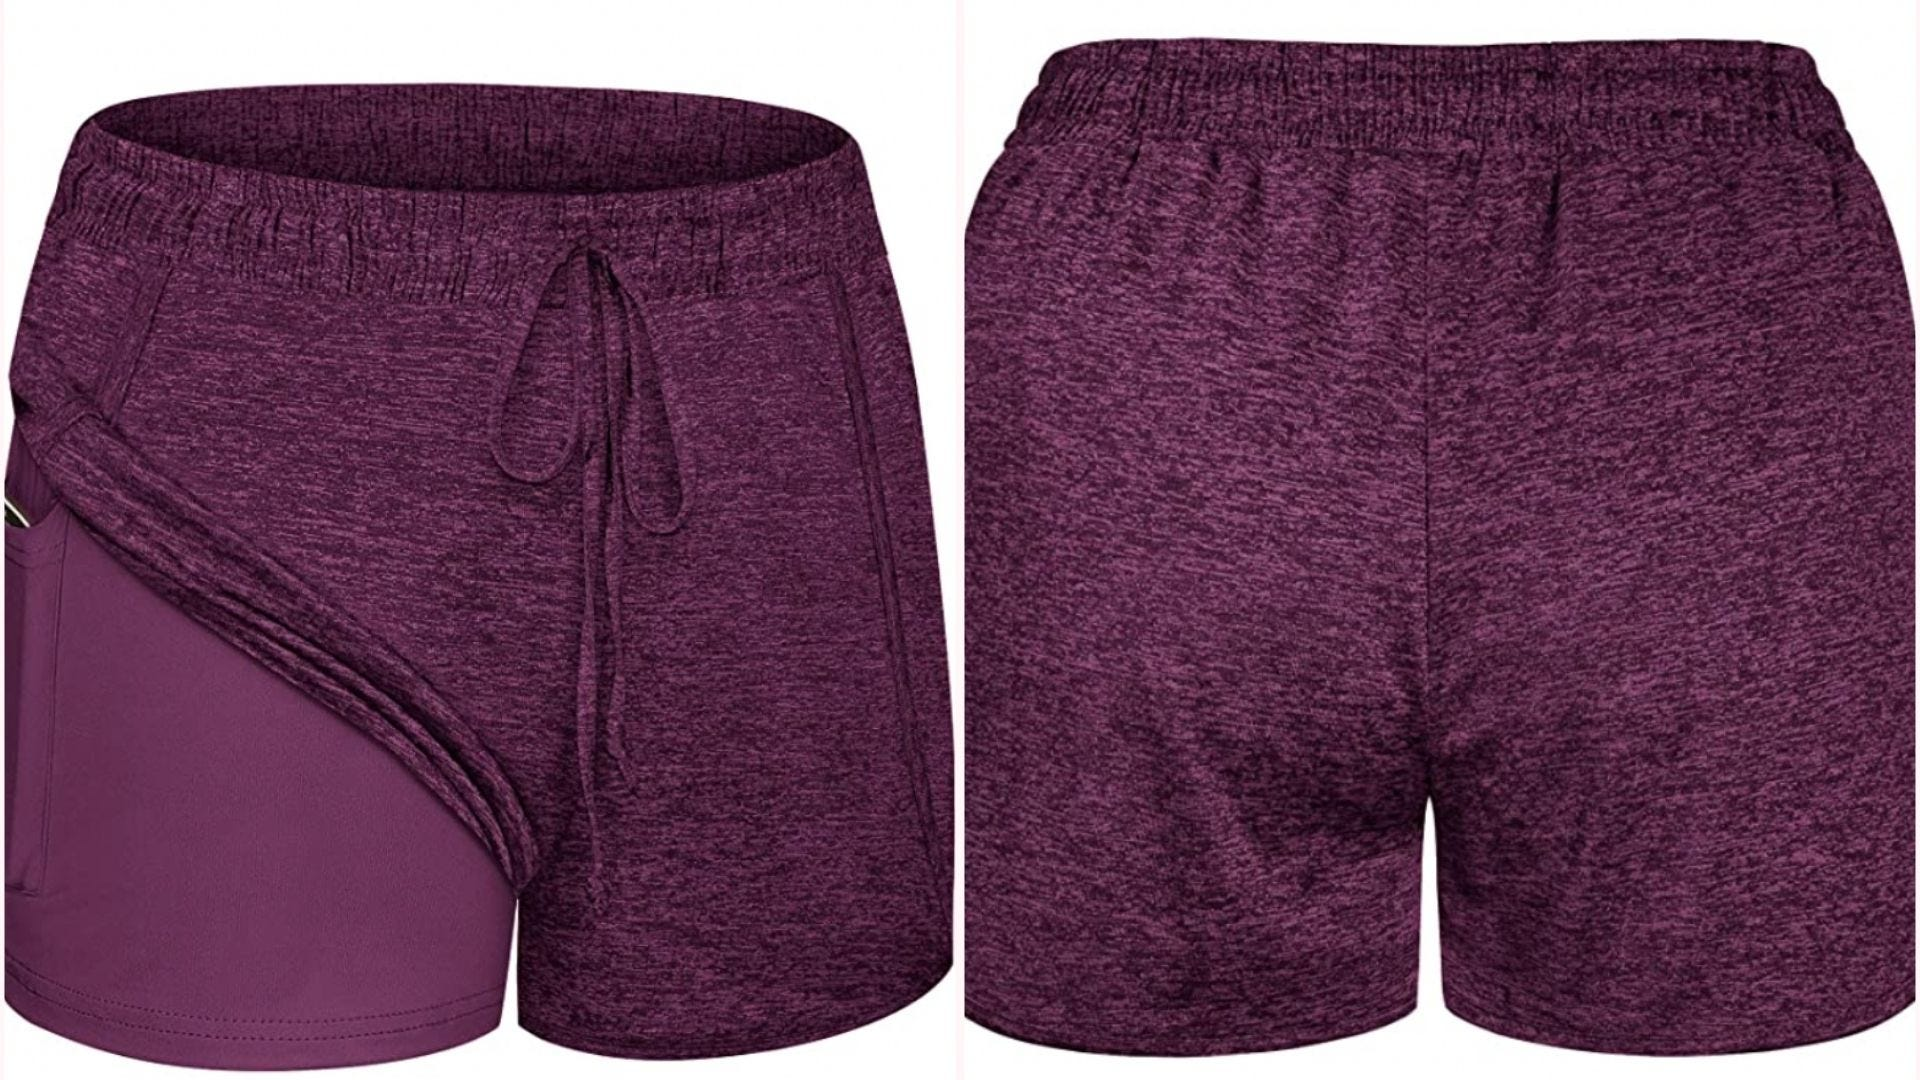 a pair of soft wine-colored athletic shorts with a drawstring and a liner